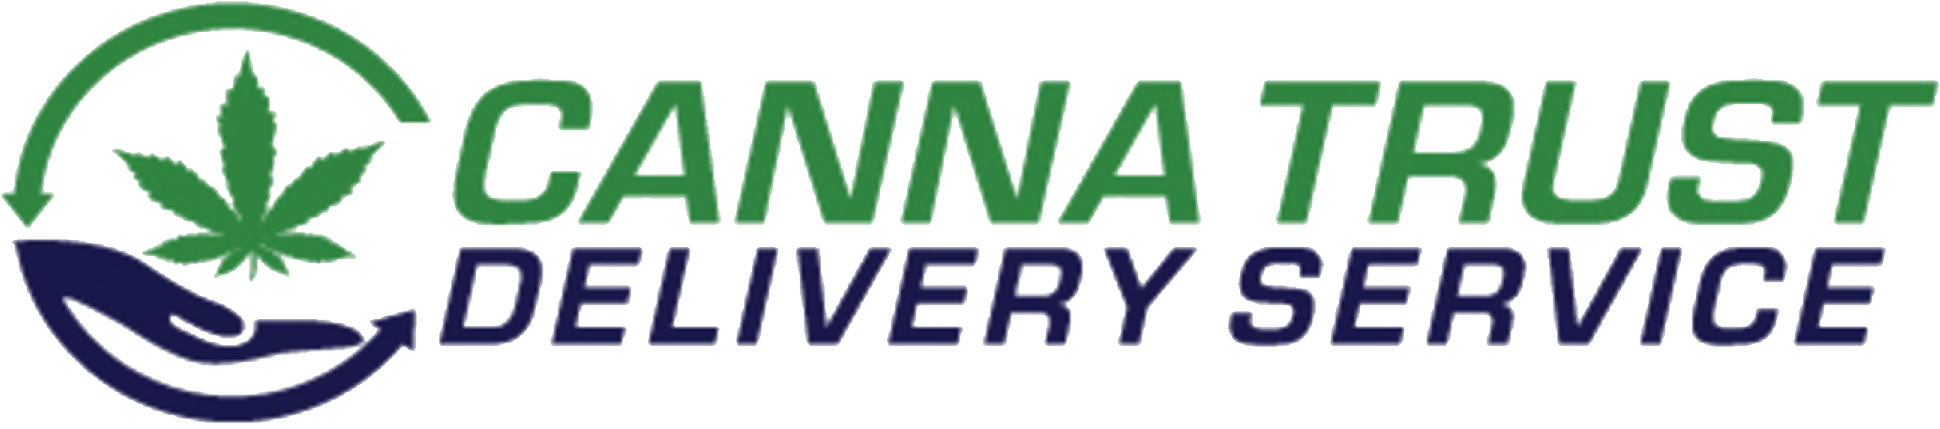 Canna Trust Delivery Service